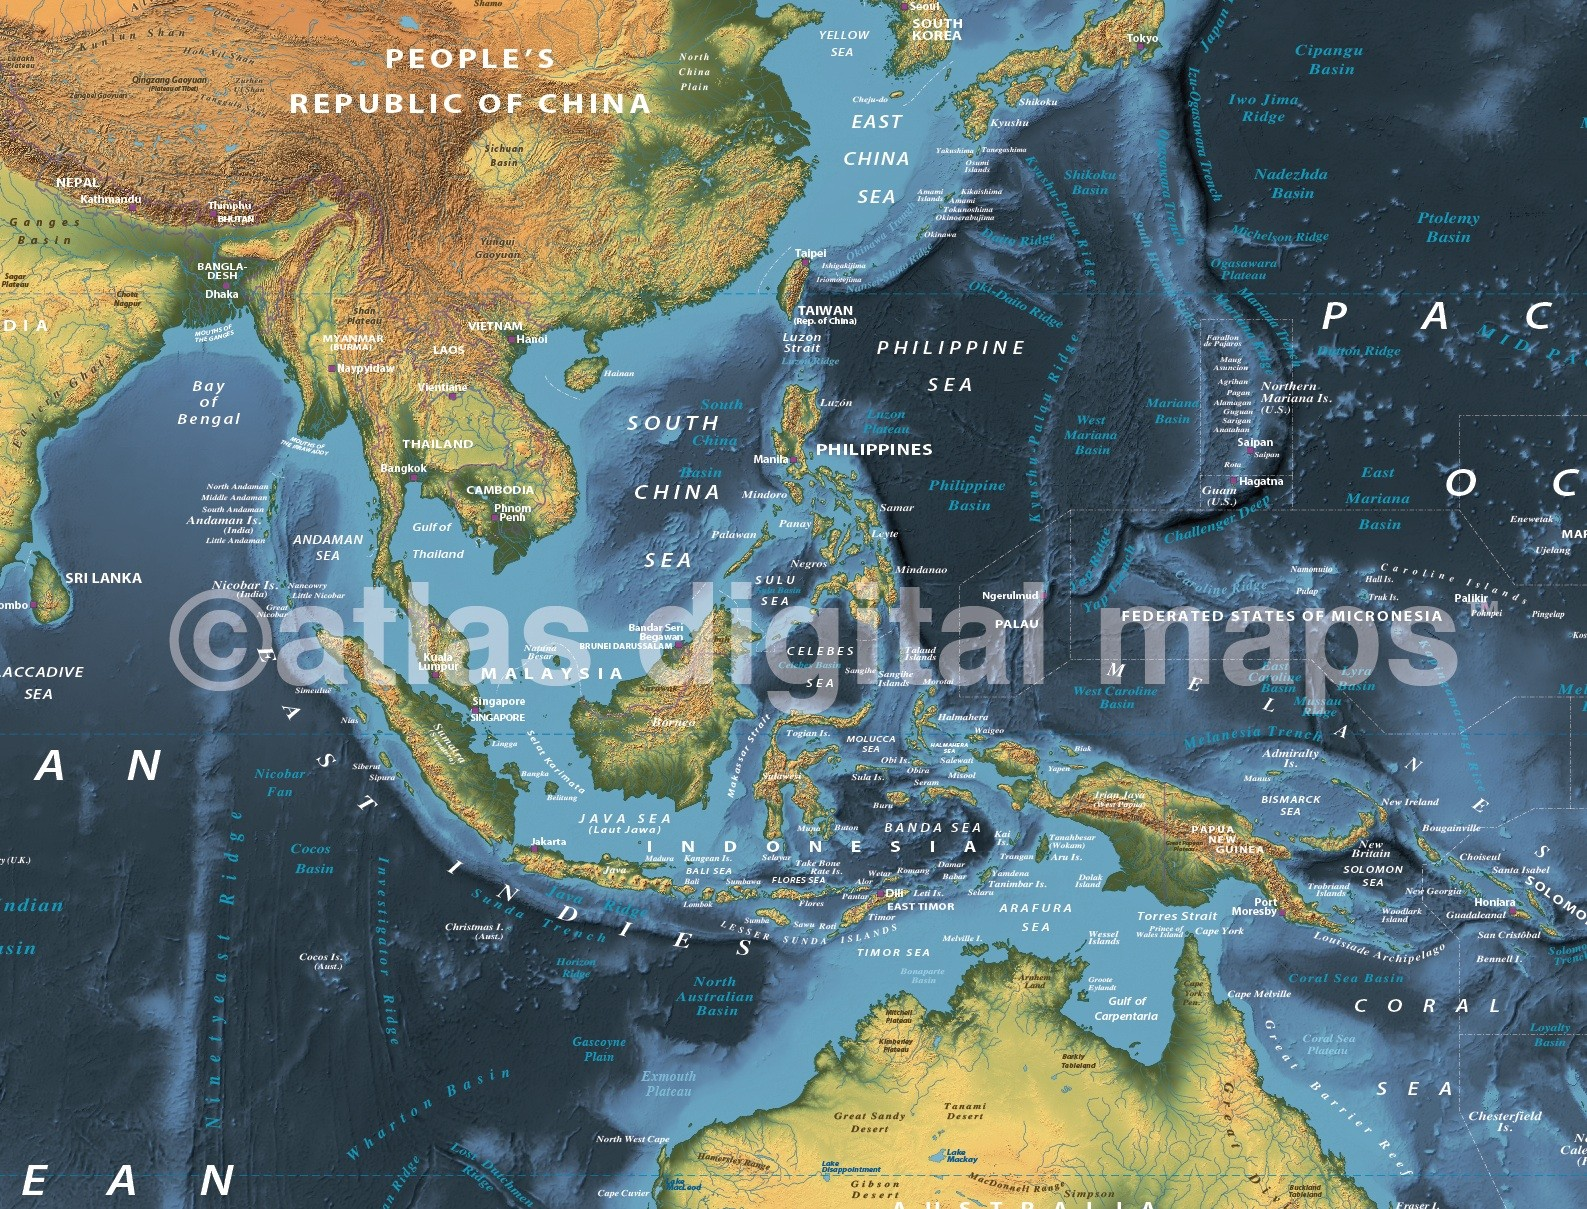 Dark style contemporary canvas world wall map 72 x 38 dark navy style contemporary canvas world wall map 72 inches wide x 38 inches deep gumiabroncs Image collections